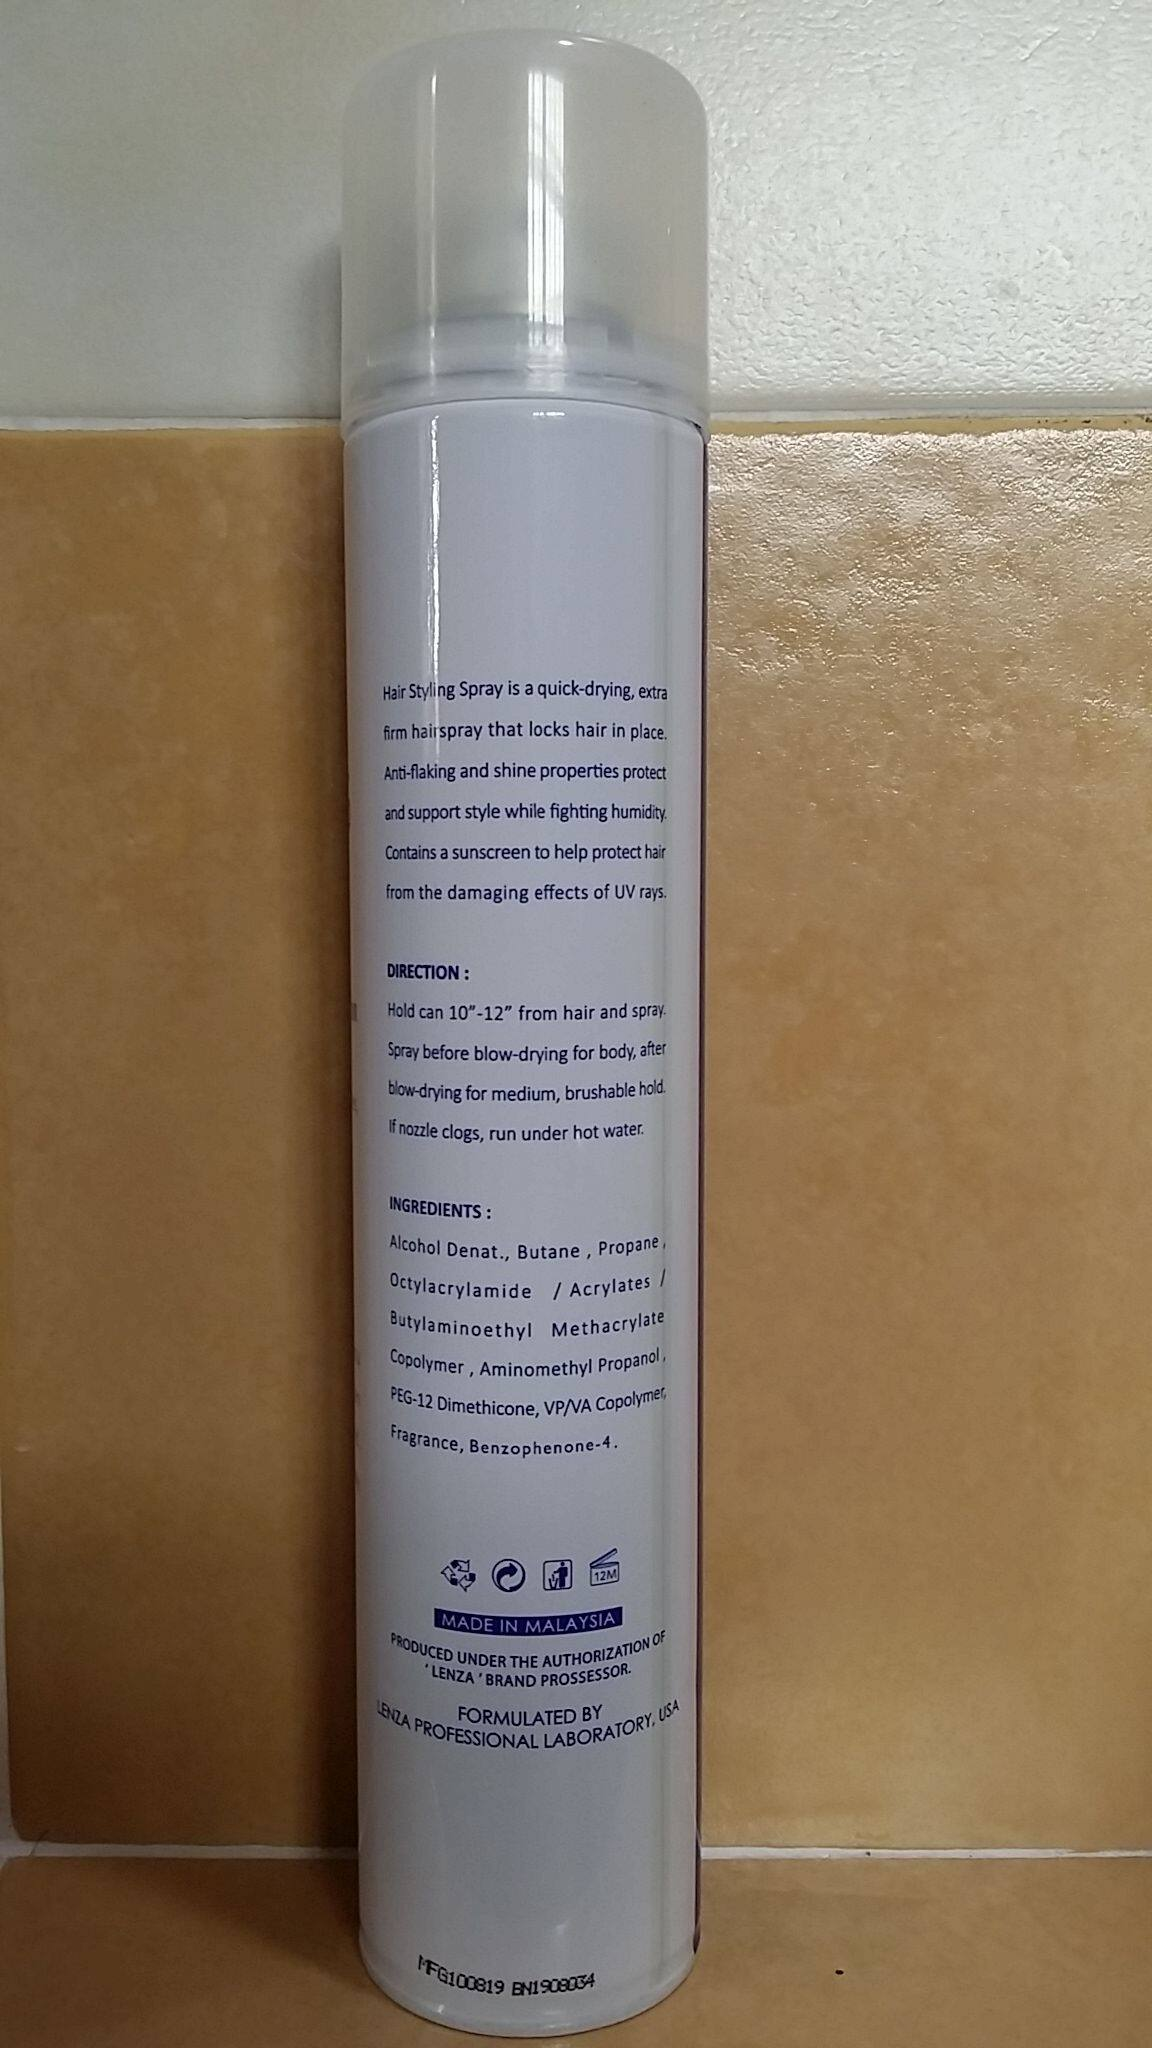 HAIRperone HC006 Lenza Professional Hair Styling Spray 420ml